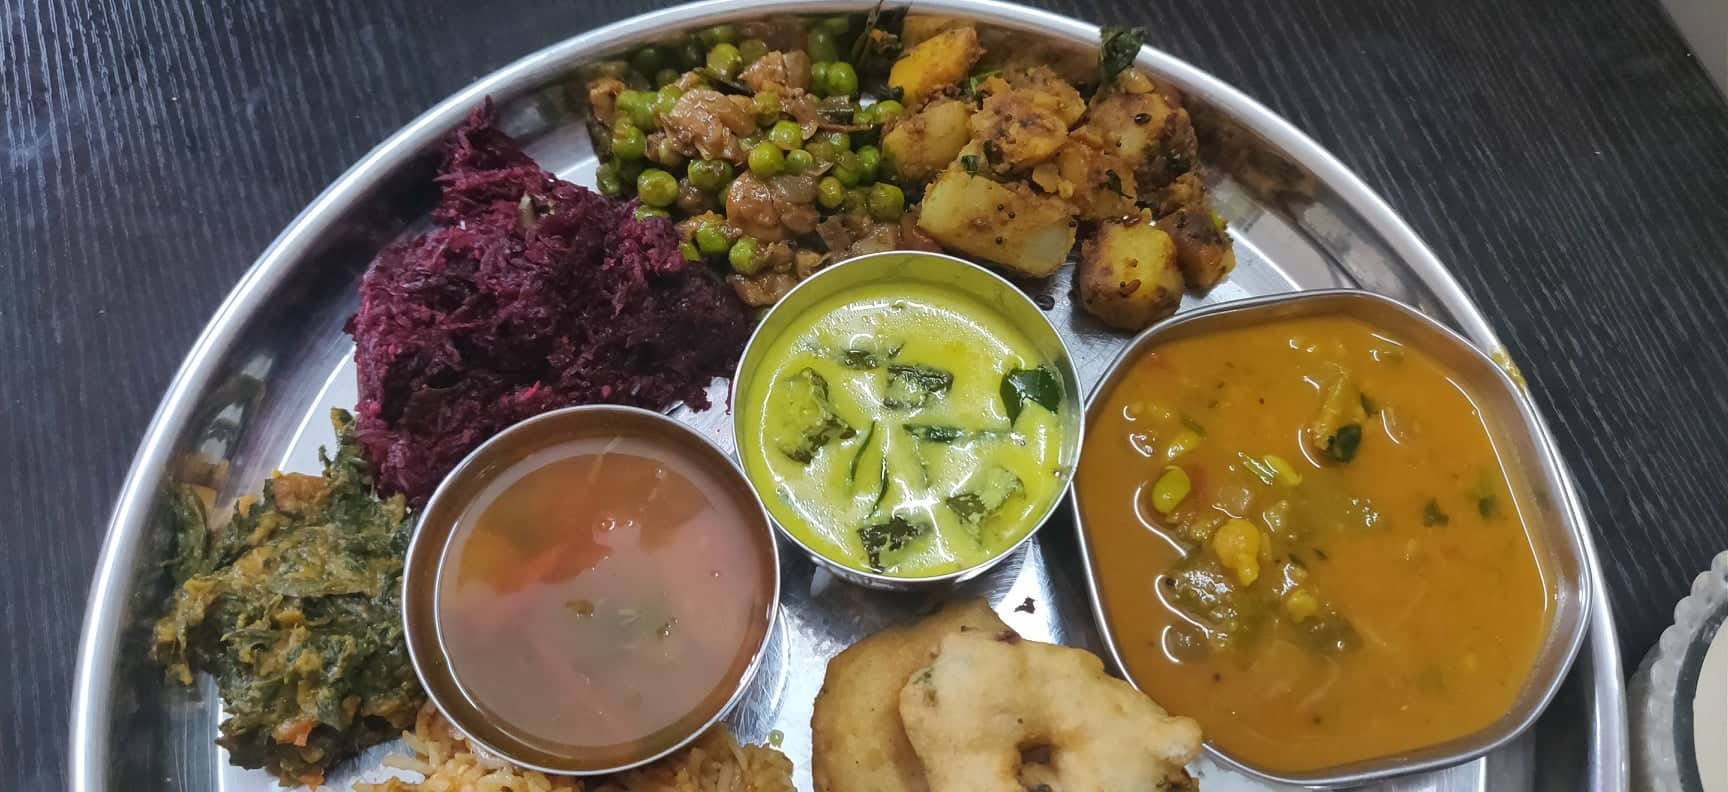 south_indian_special_meals - 82529431_539411233451151_2869419117327155200_n